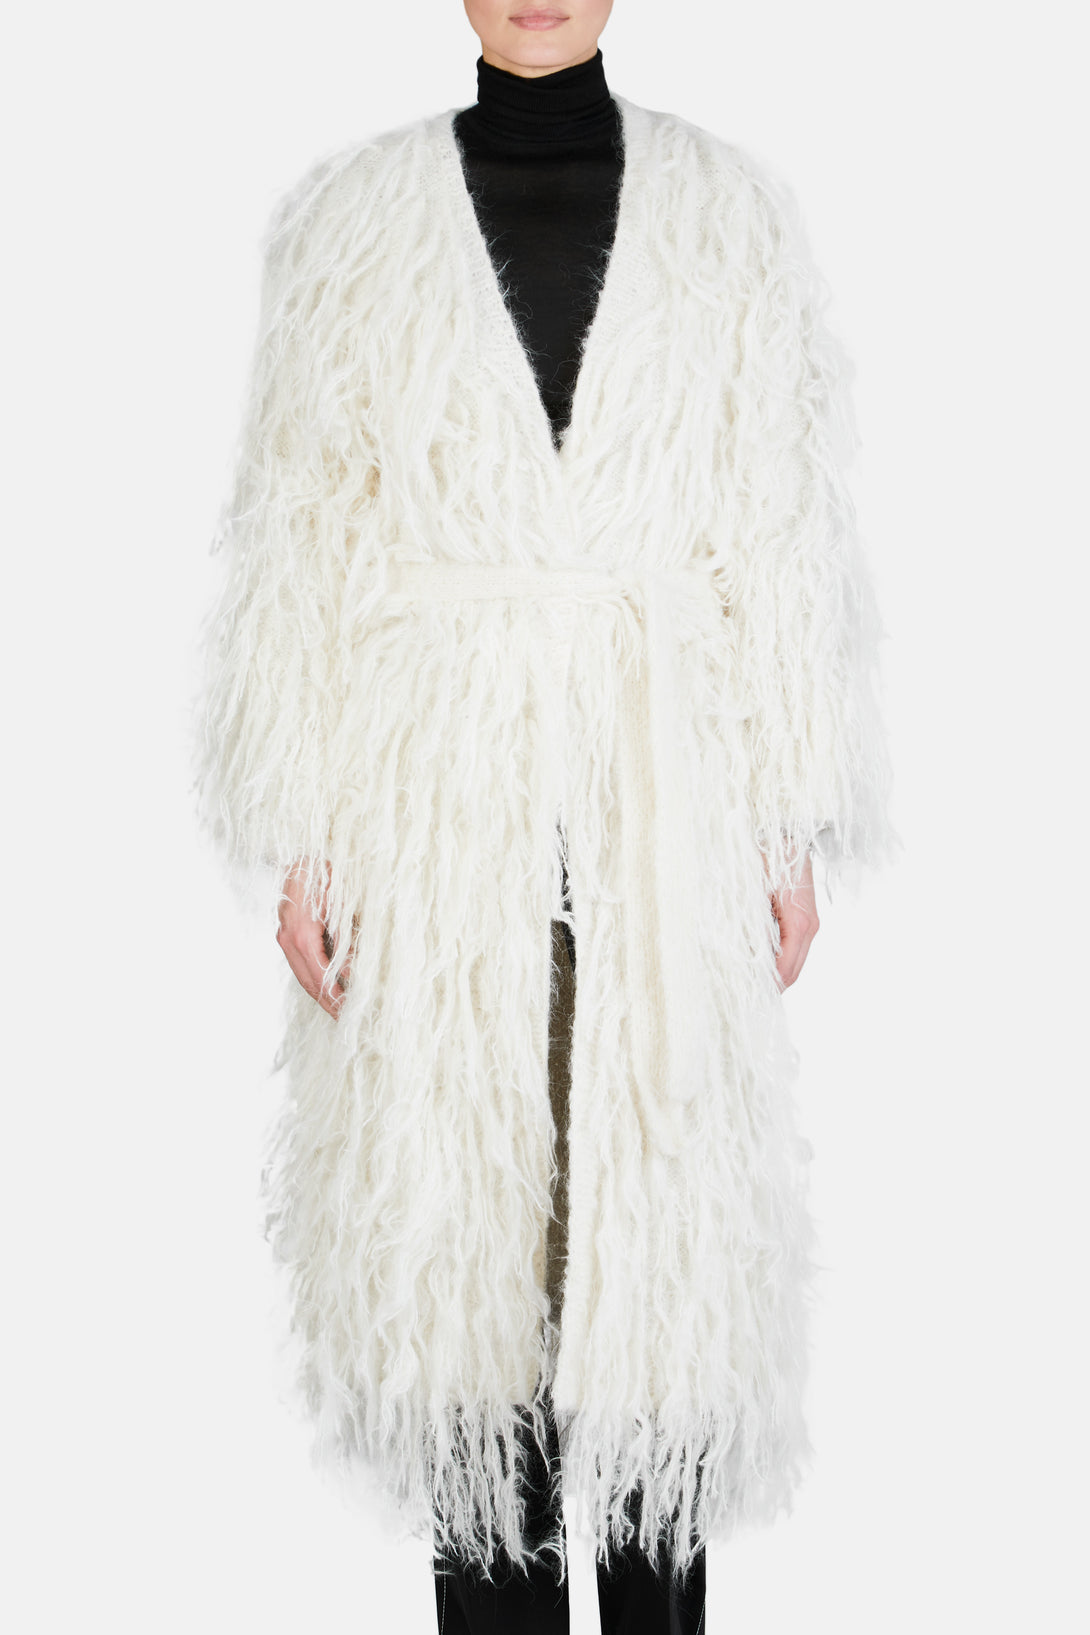 Handknitted Belted Coat - Off White